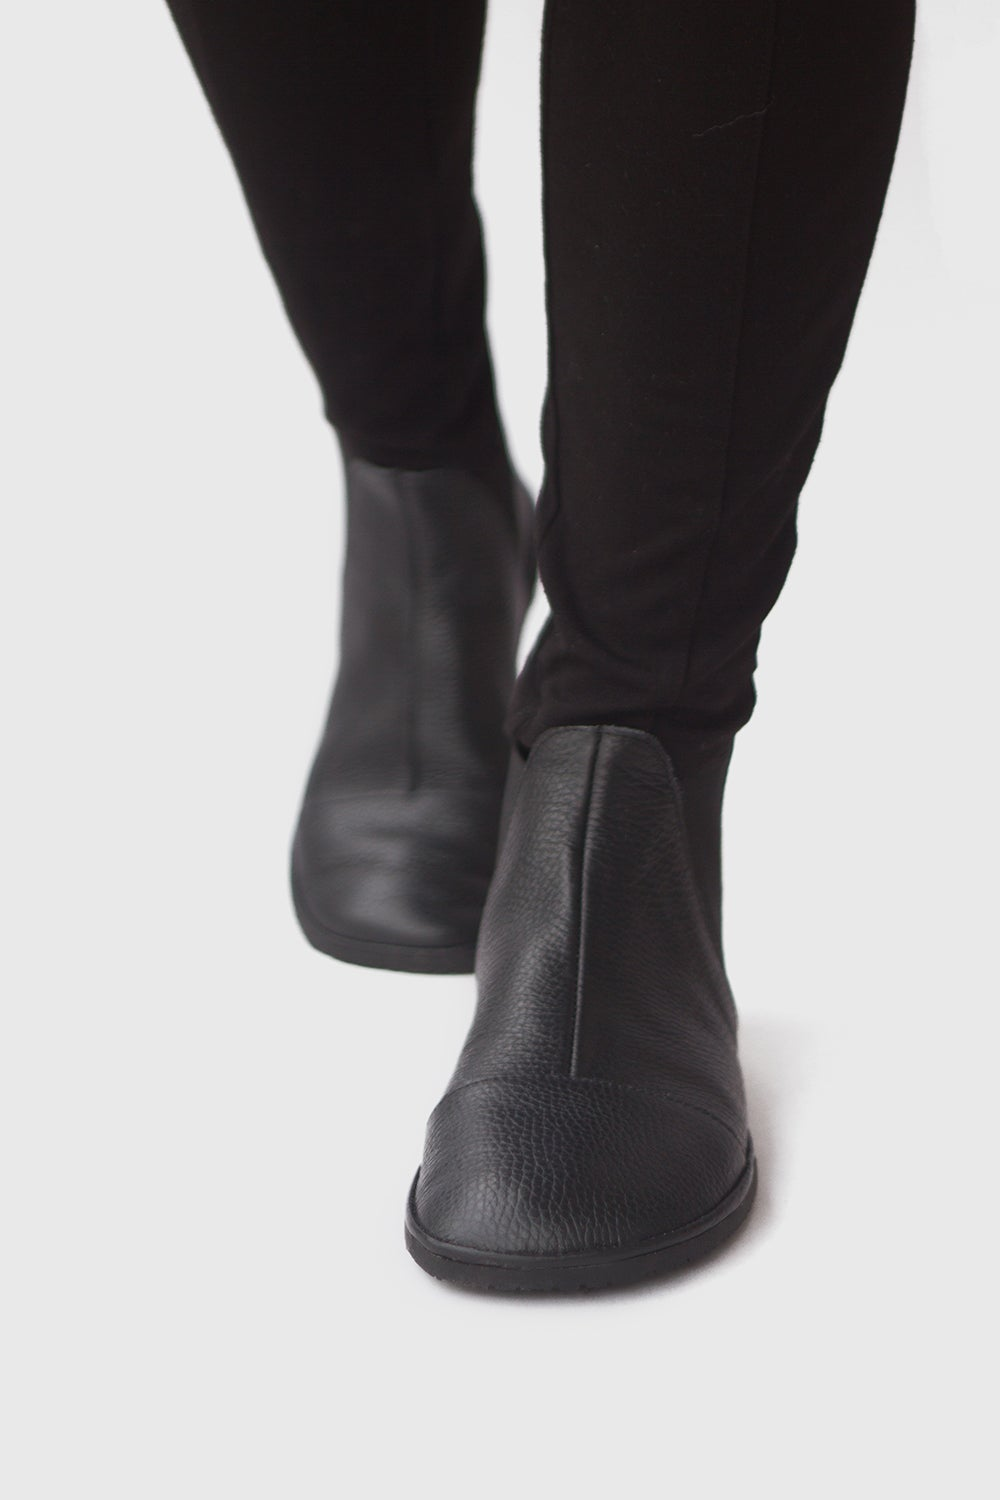 Image of Chelsea boots in Pebbled Black